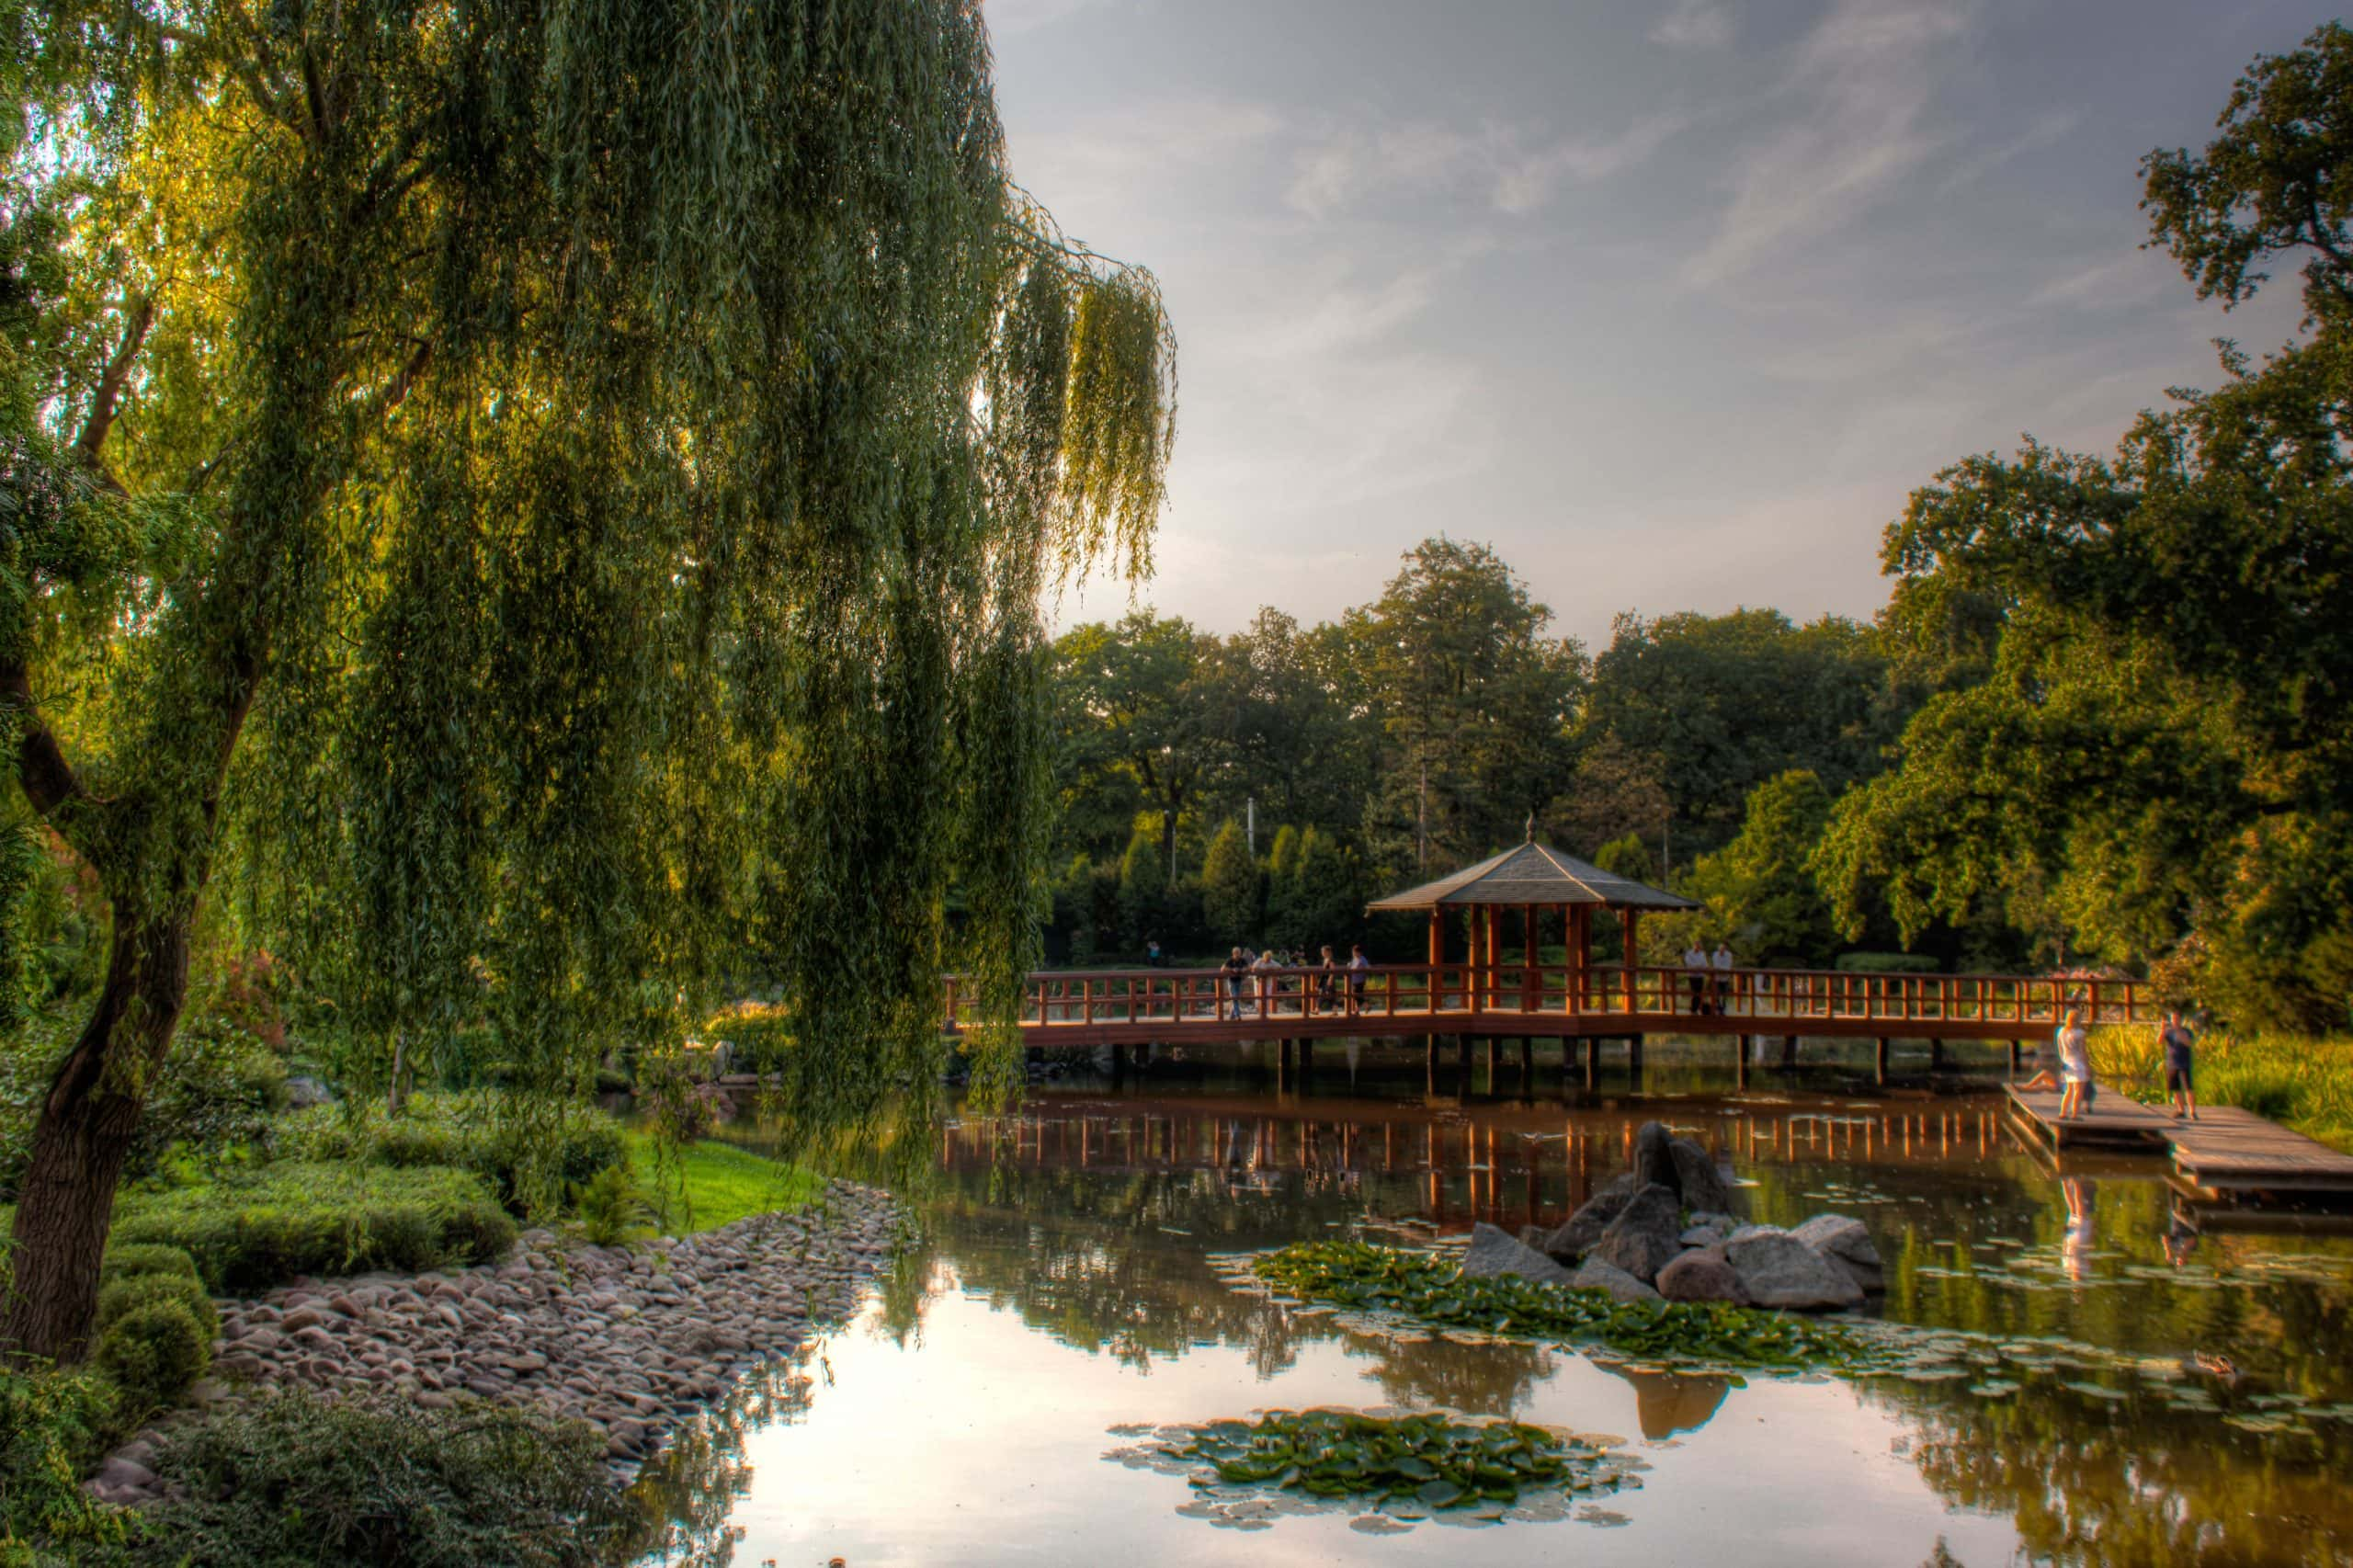 Bridge in the Japanese Garden Wroclaw with river reflection. Poland